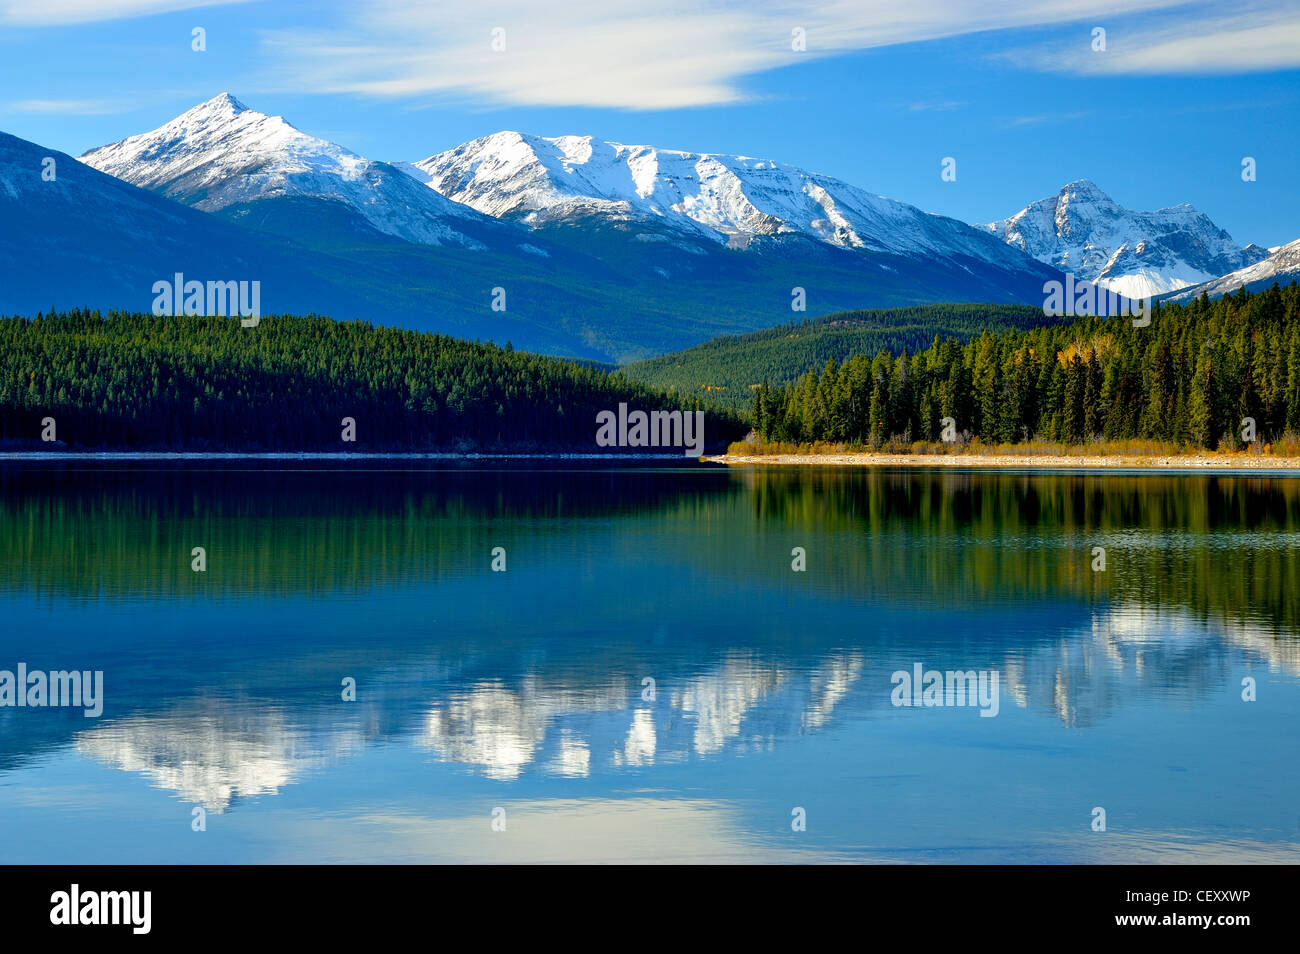 Patrica Lake with the snow-capped rocky mountains in the background. - Stock Image